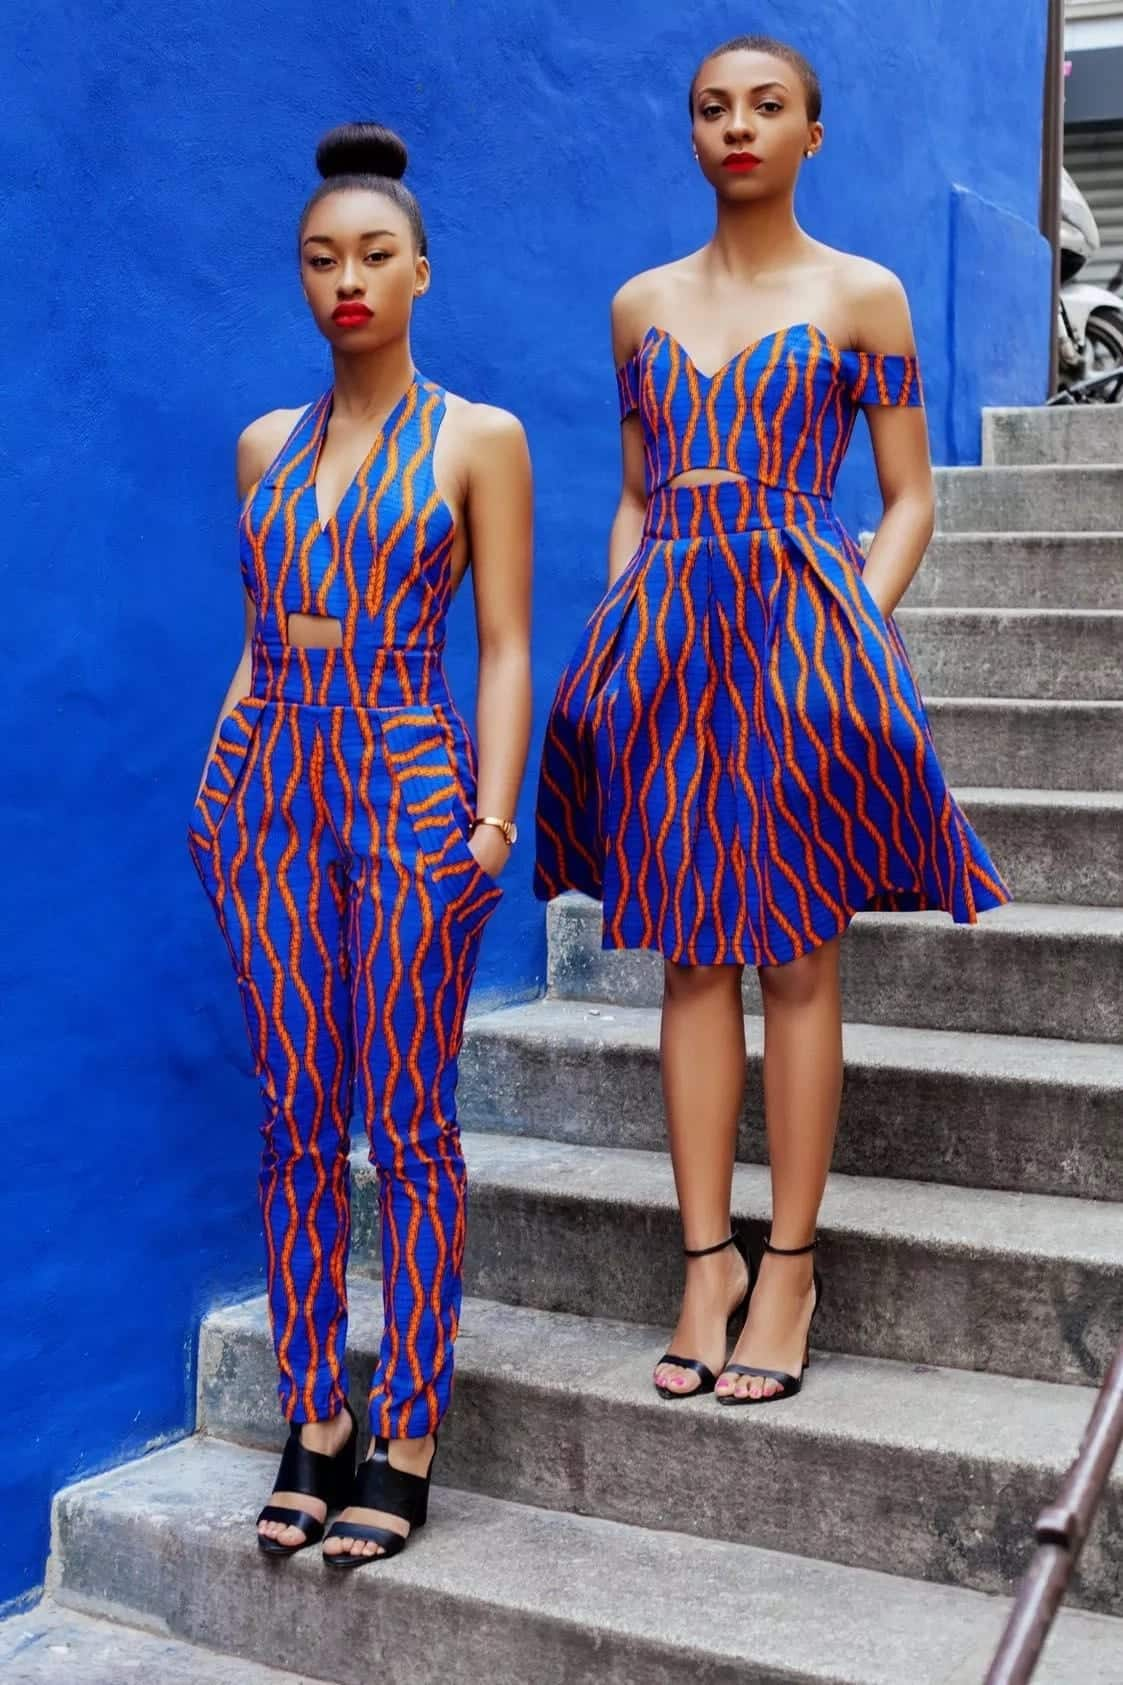 african print styles for couples, african print styles, couples african wear